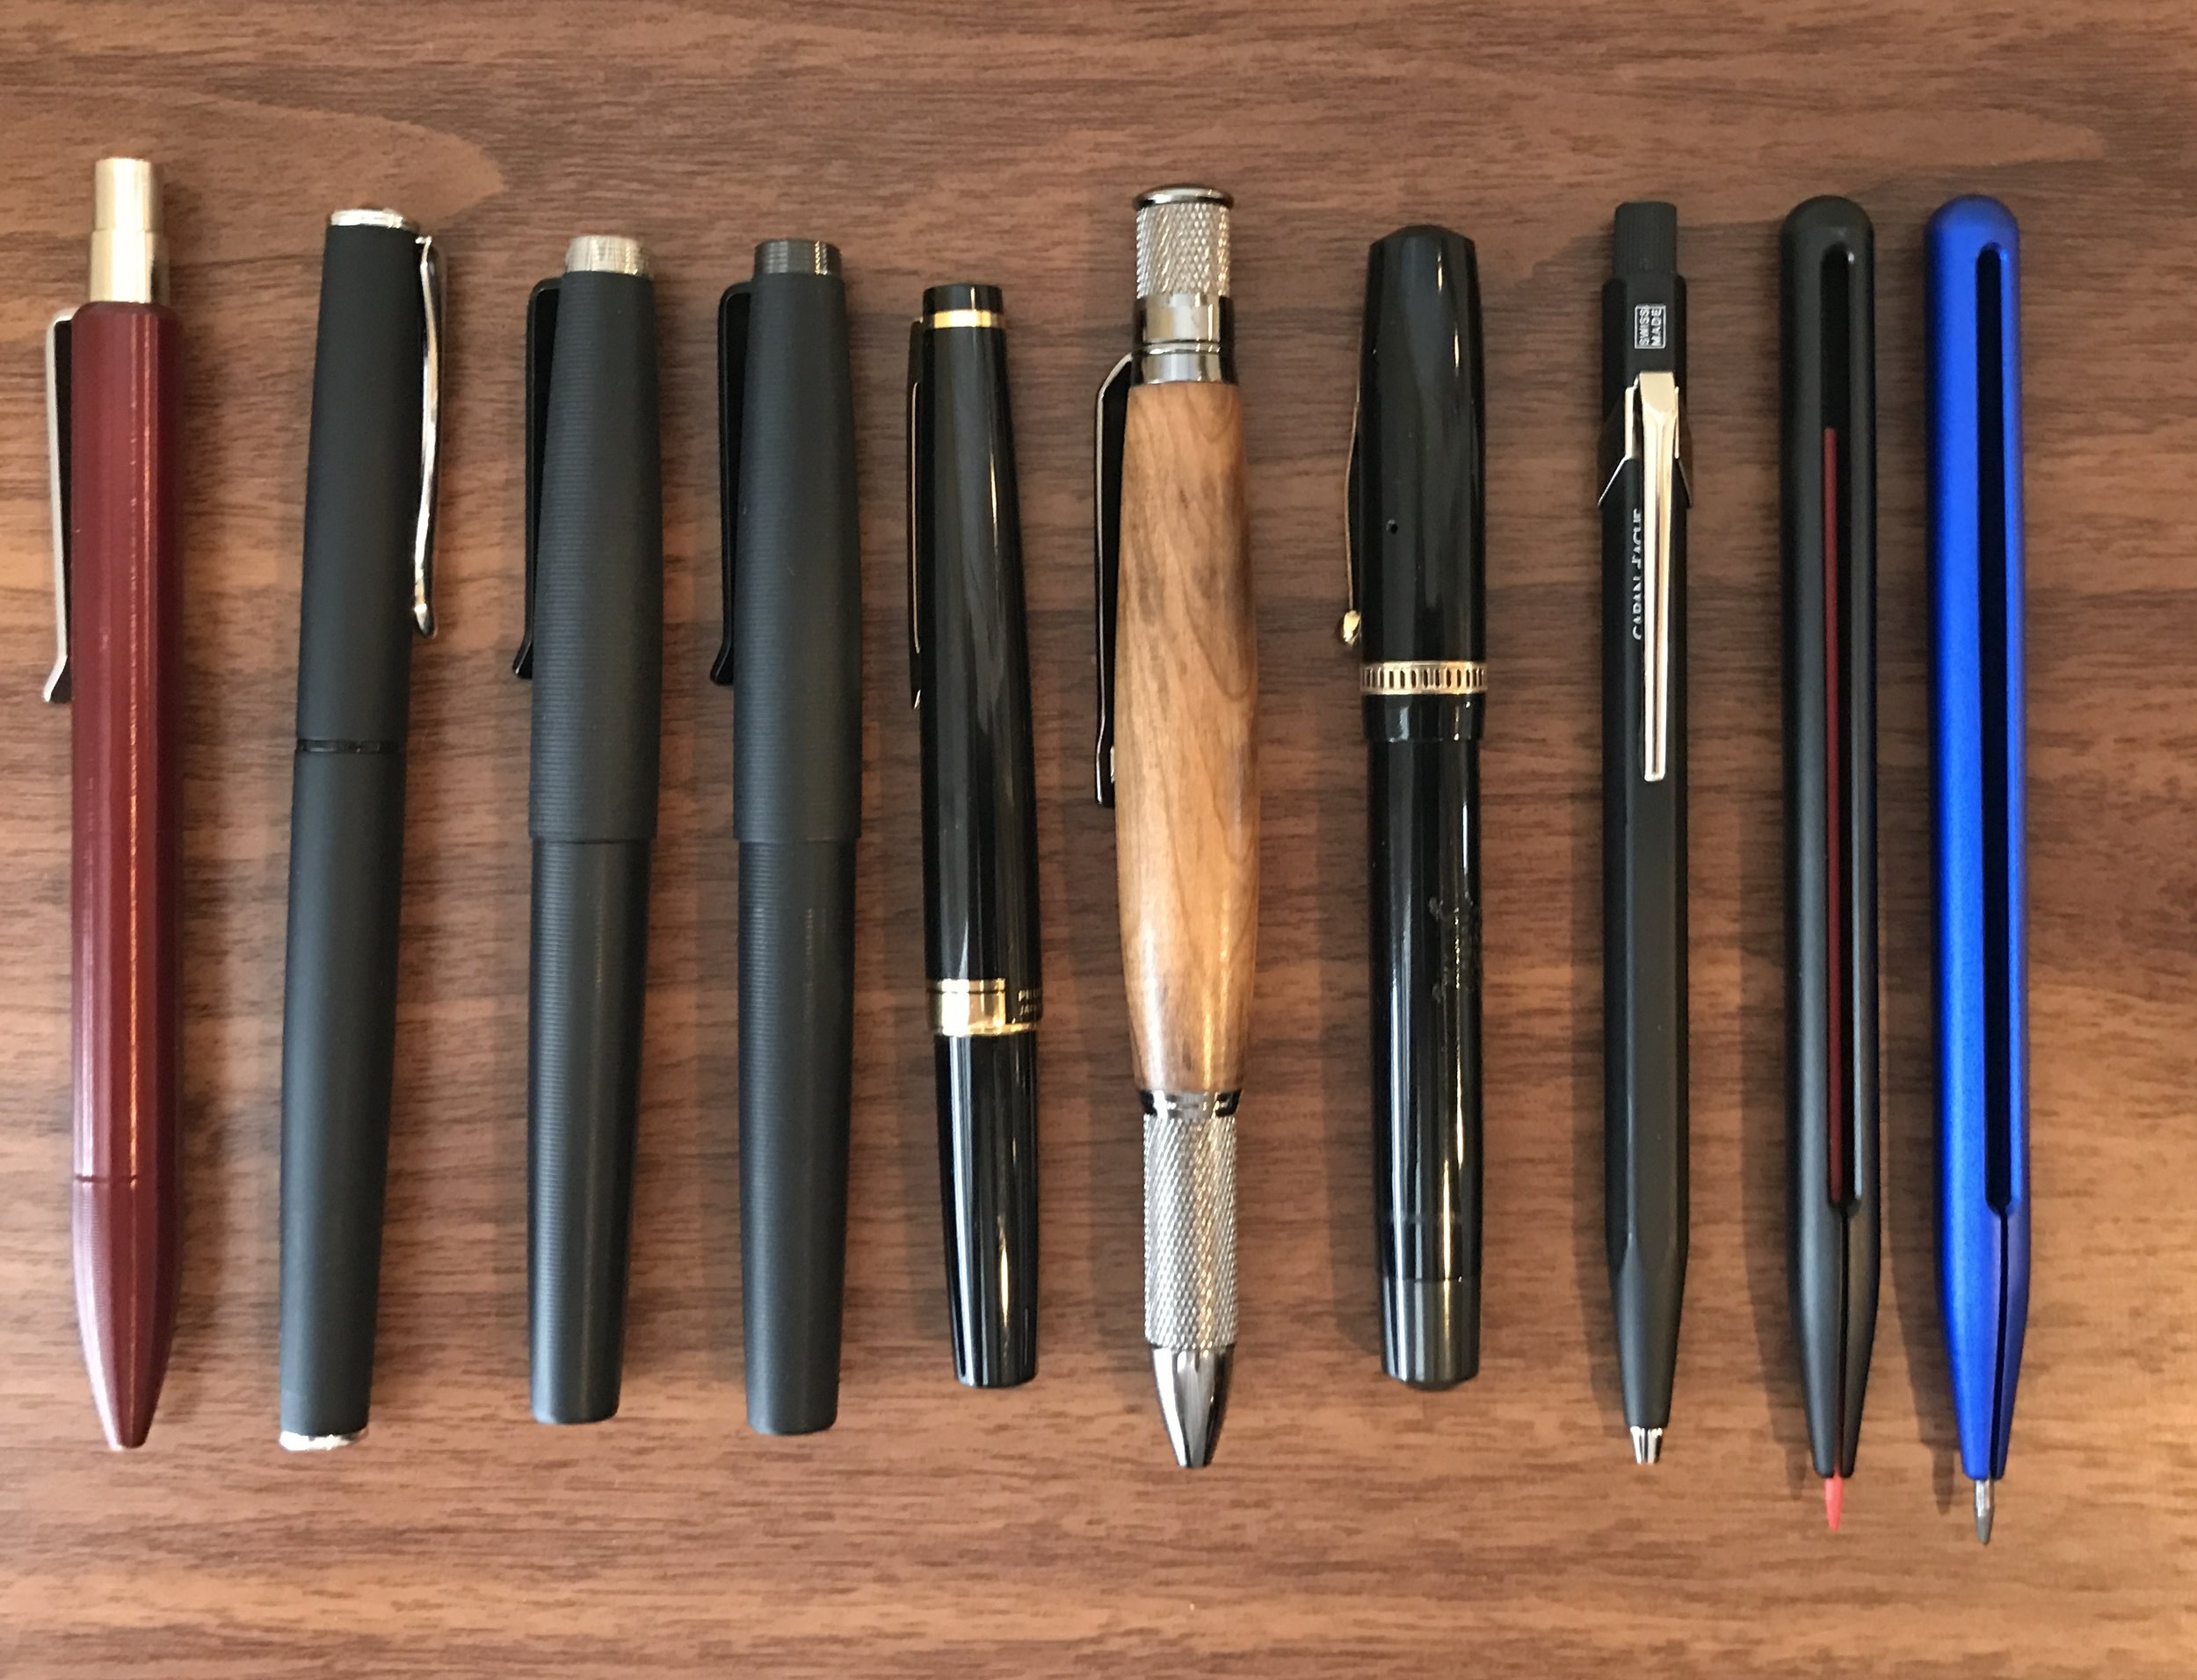 The Pen Addict Slack Channel Was Fast - A lot of stuff has already sold out but there are still some good buys remaining!